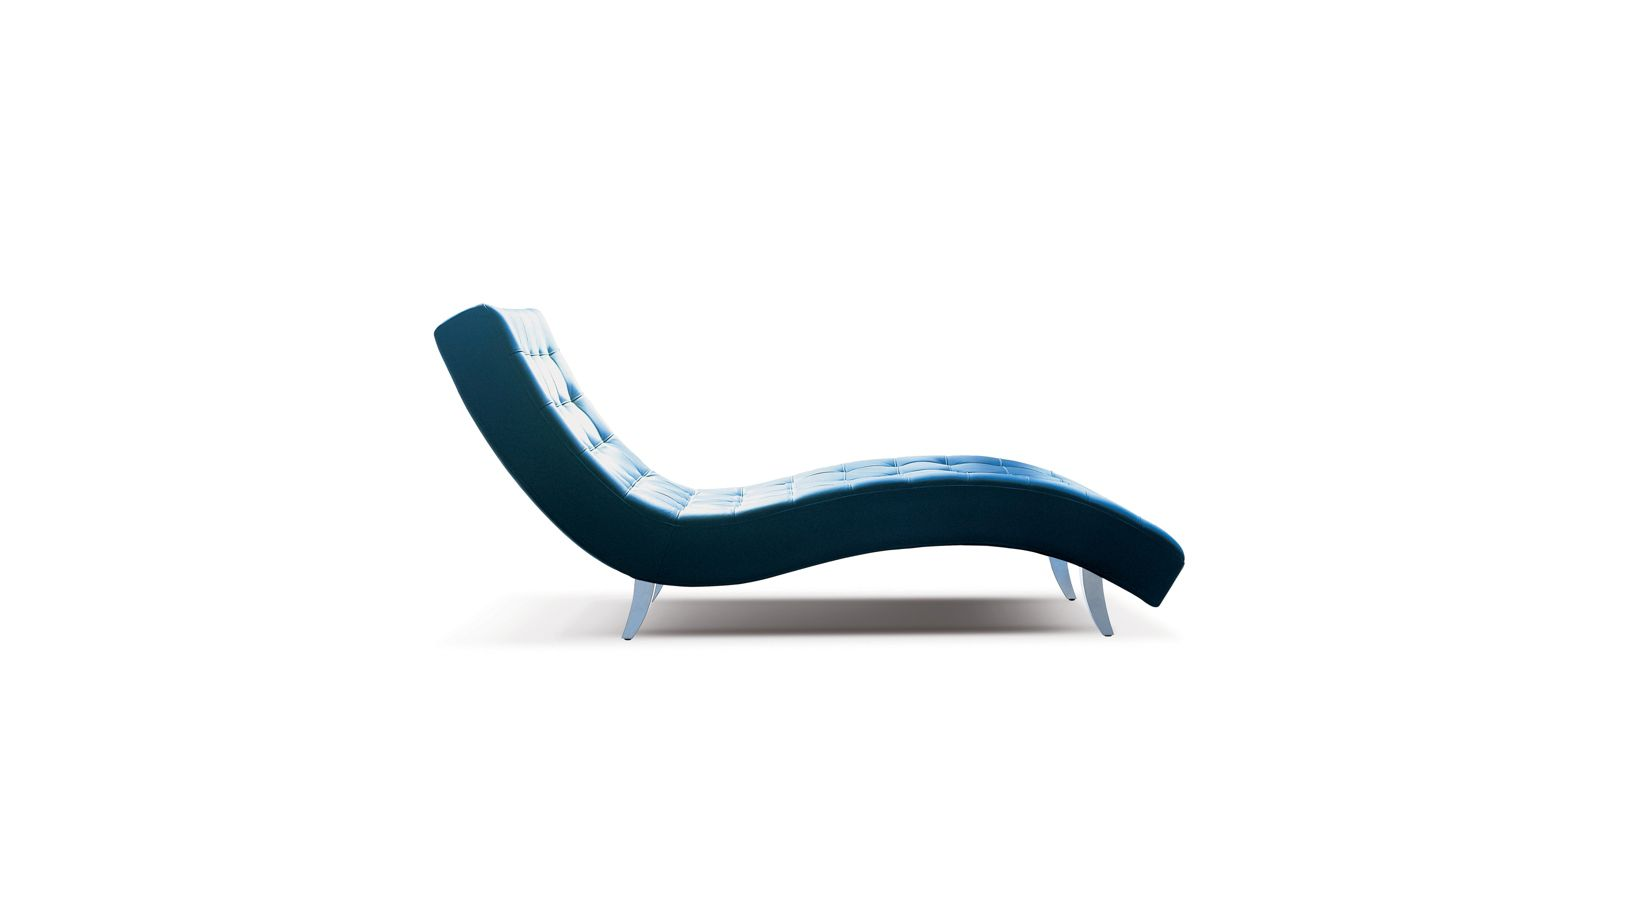 Dolce lounge chair roche bobois for Chaise longue roche bobois